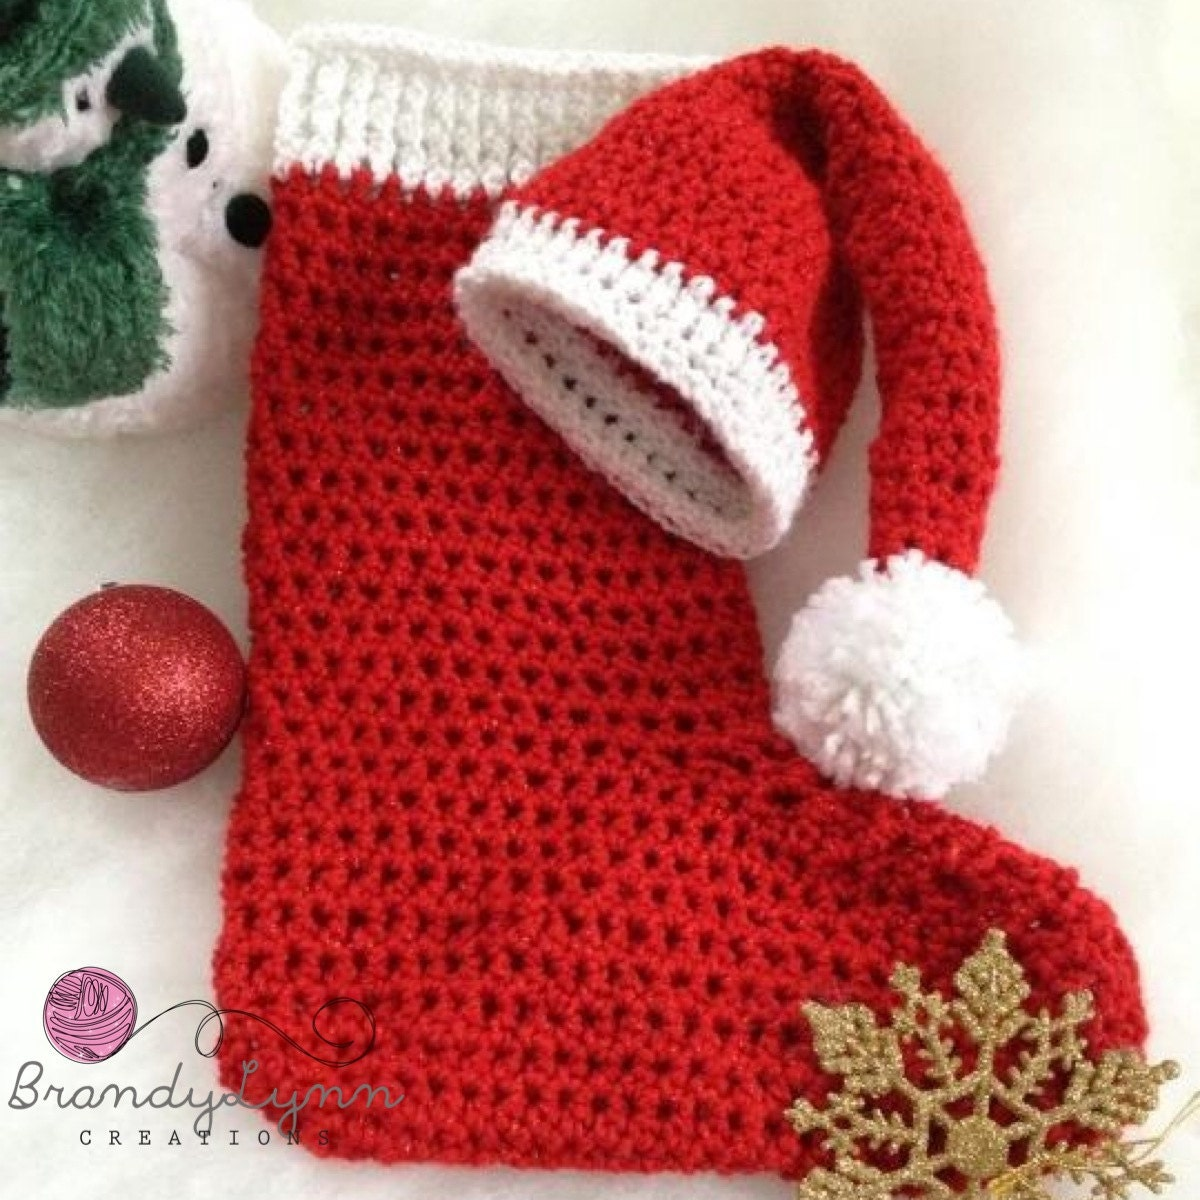 Crocheted Infant/Newborn photo prop Santa hat and stocking